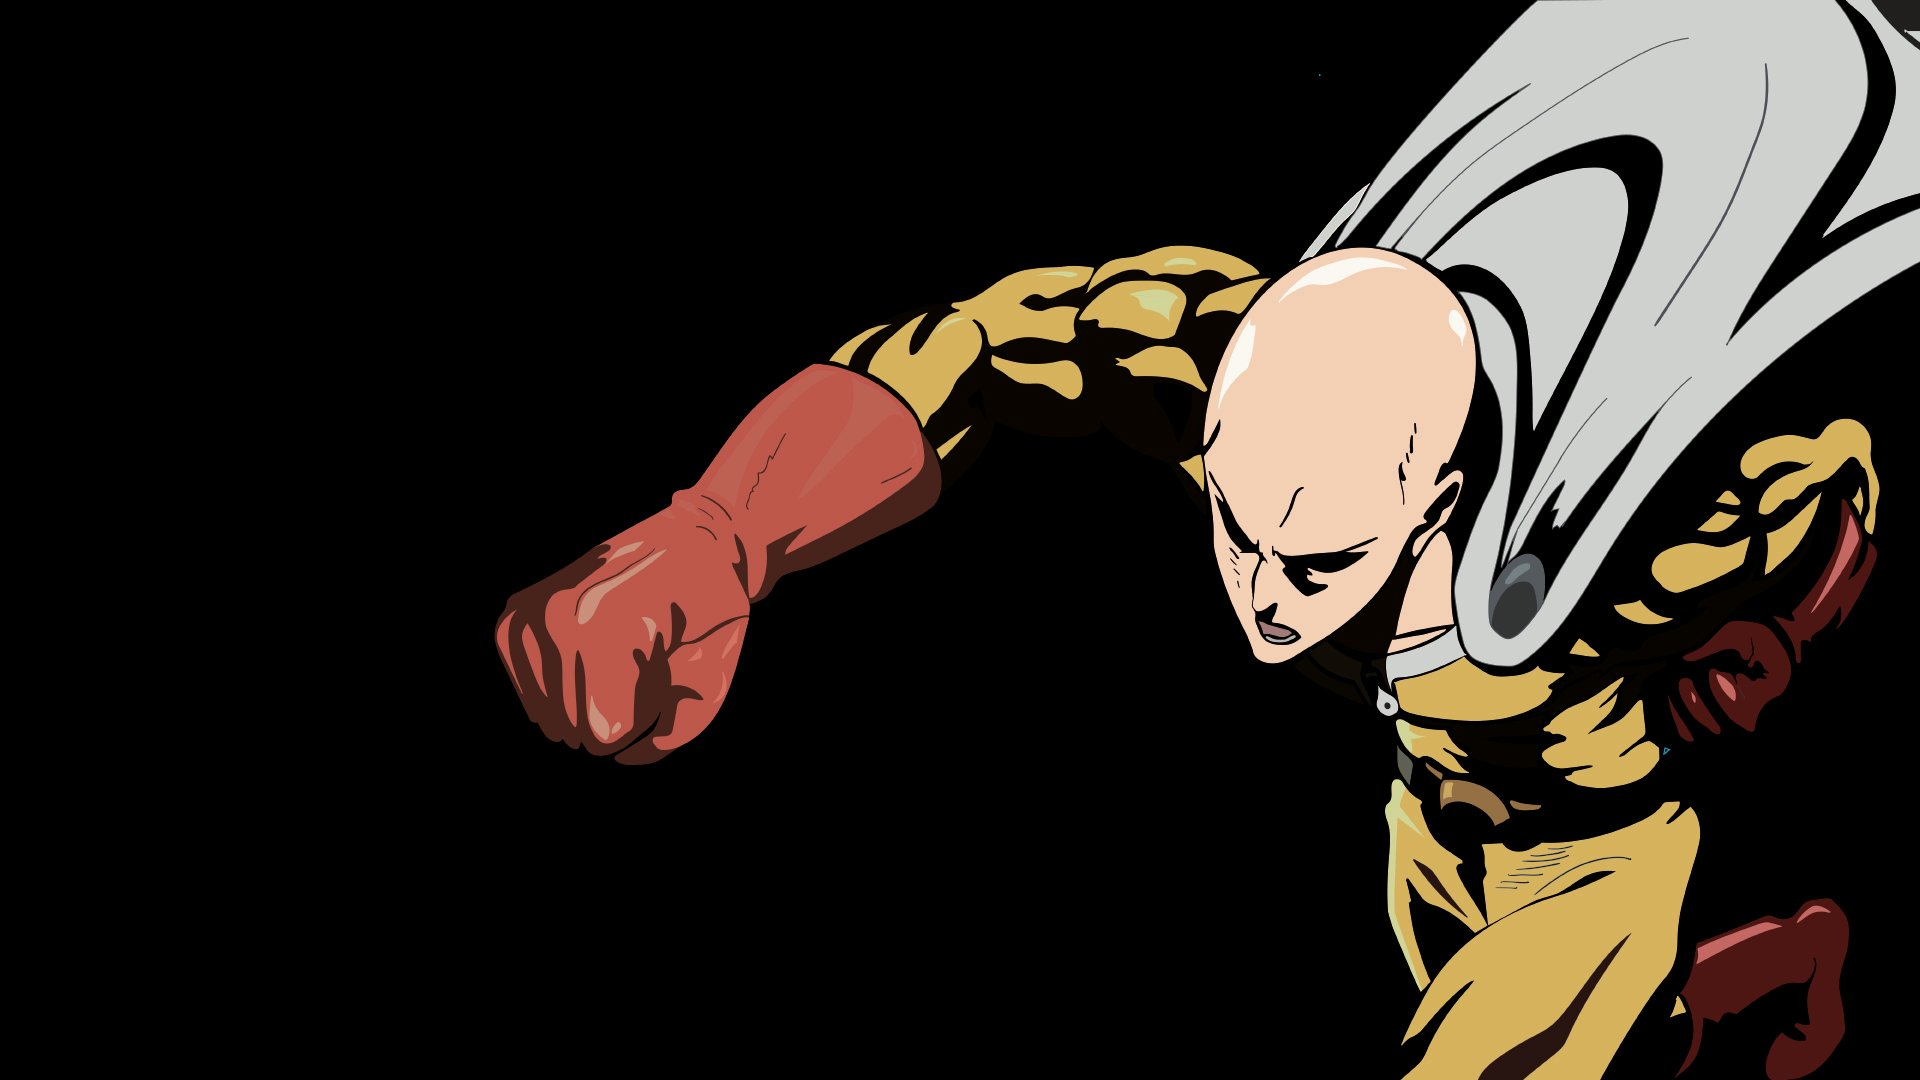 46 One Punch Man Hd Wallpaper On Wallpapersafari